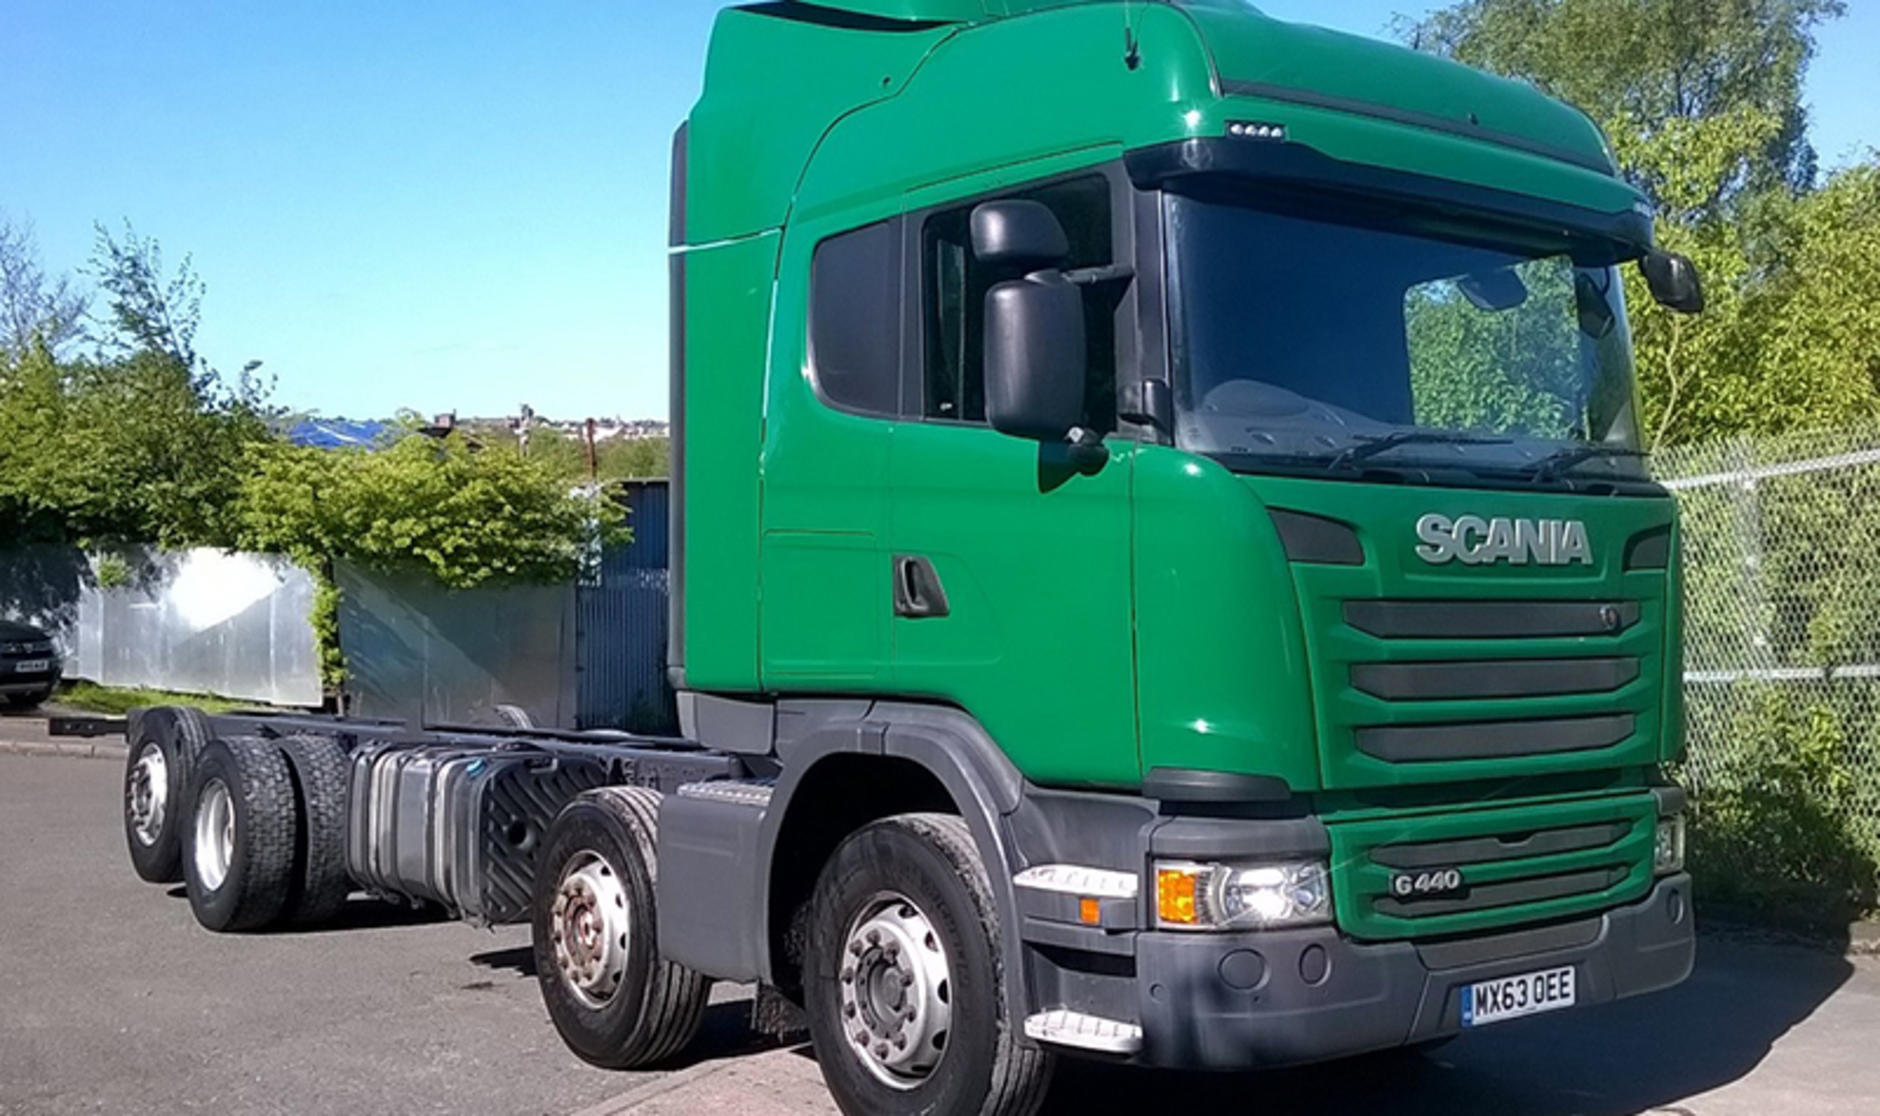 Commercial motor s truck of the week 2013 scania r440 8x2 for Commercial motor used trucks